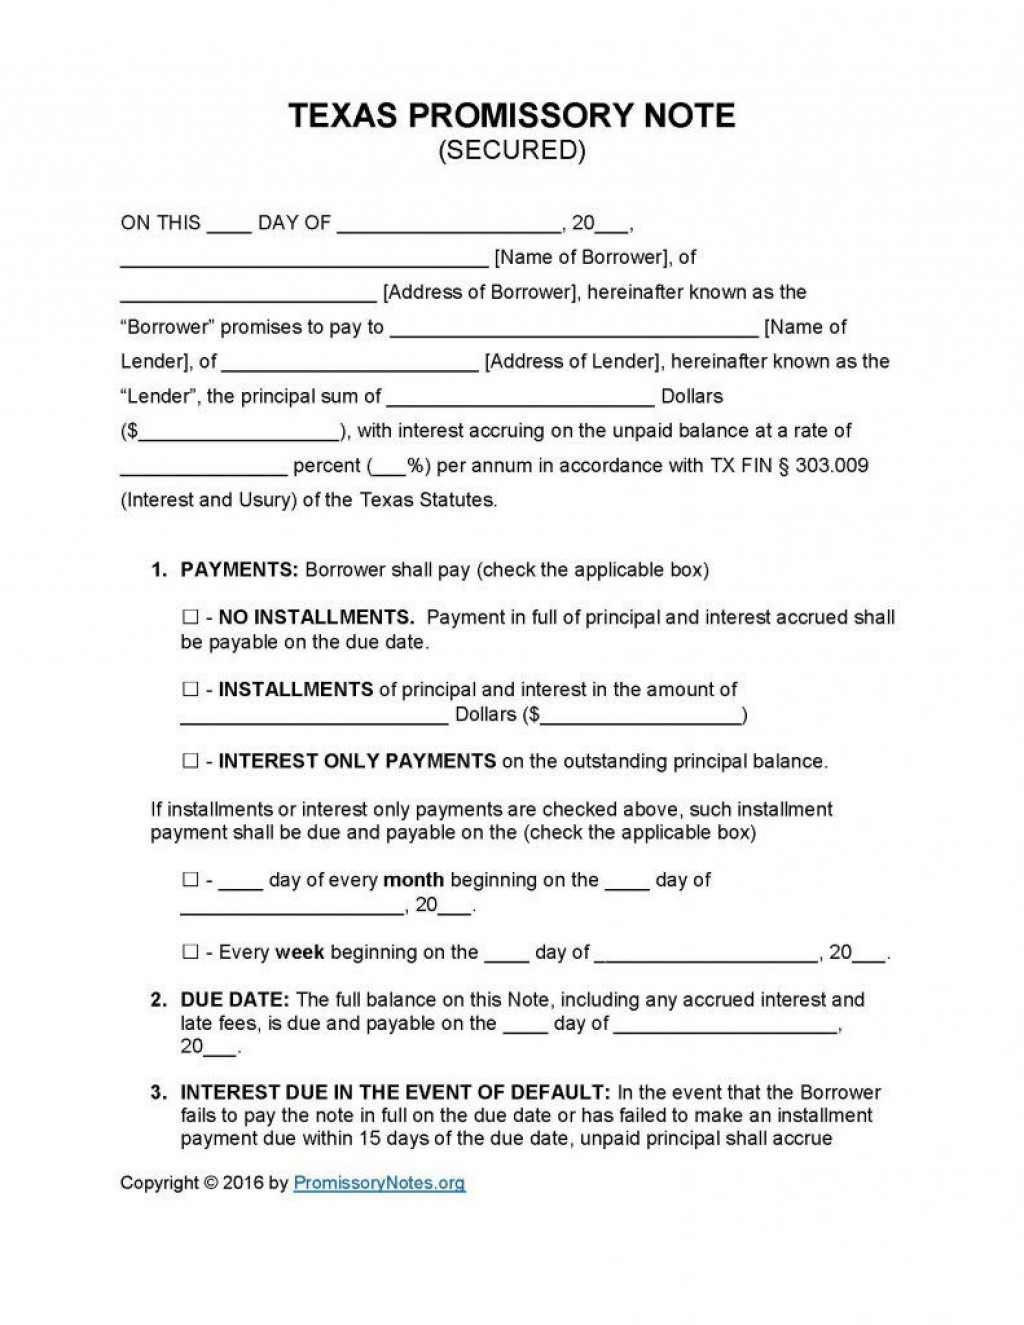 008 Impressive Real Estate Promissory Note Template High Resolution  Pdf The Commission Approved Earnest Money FormLarge